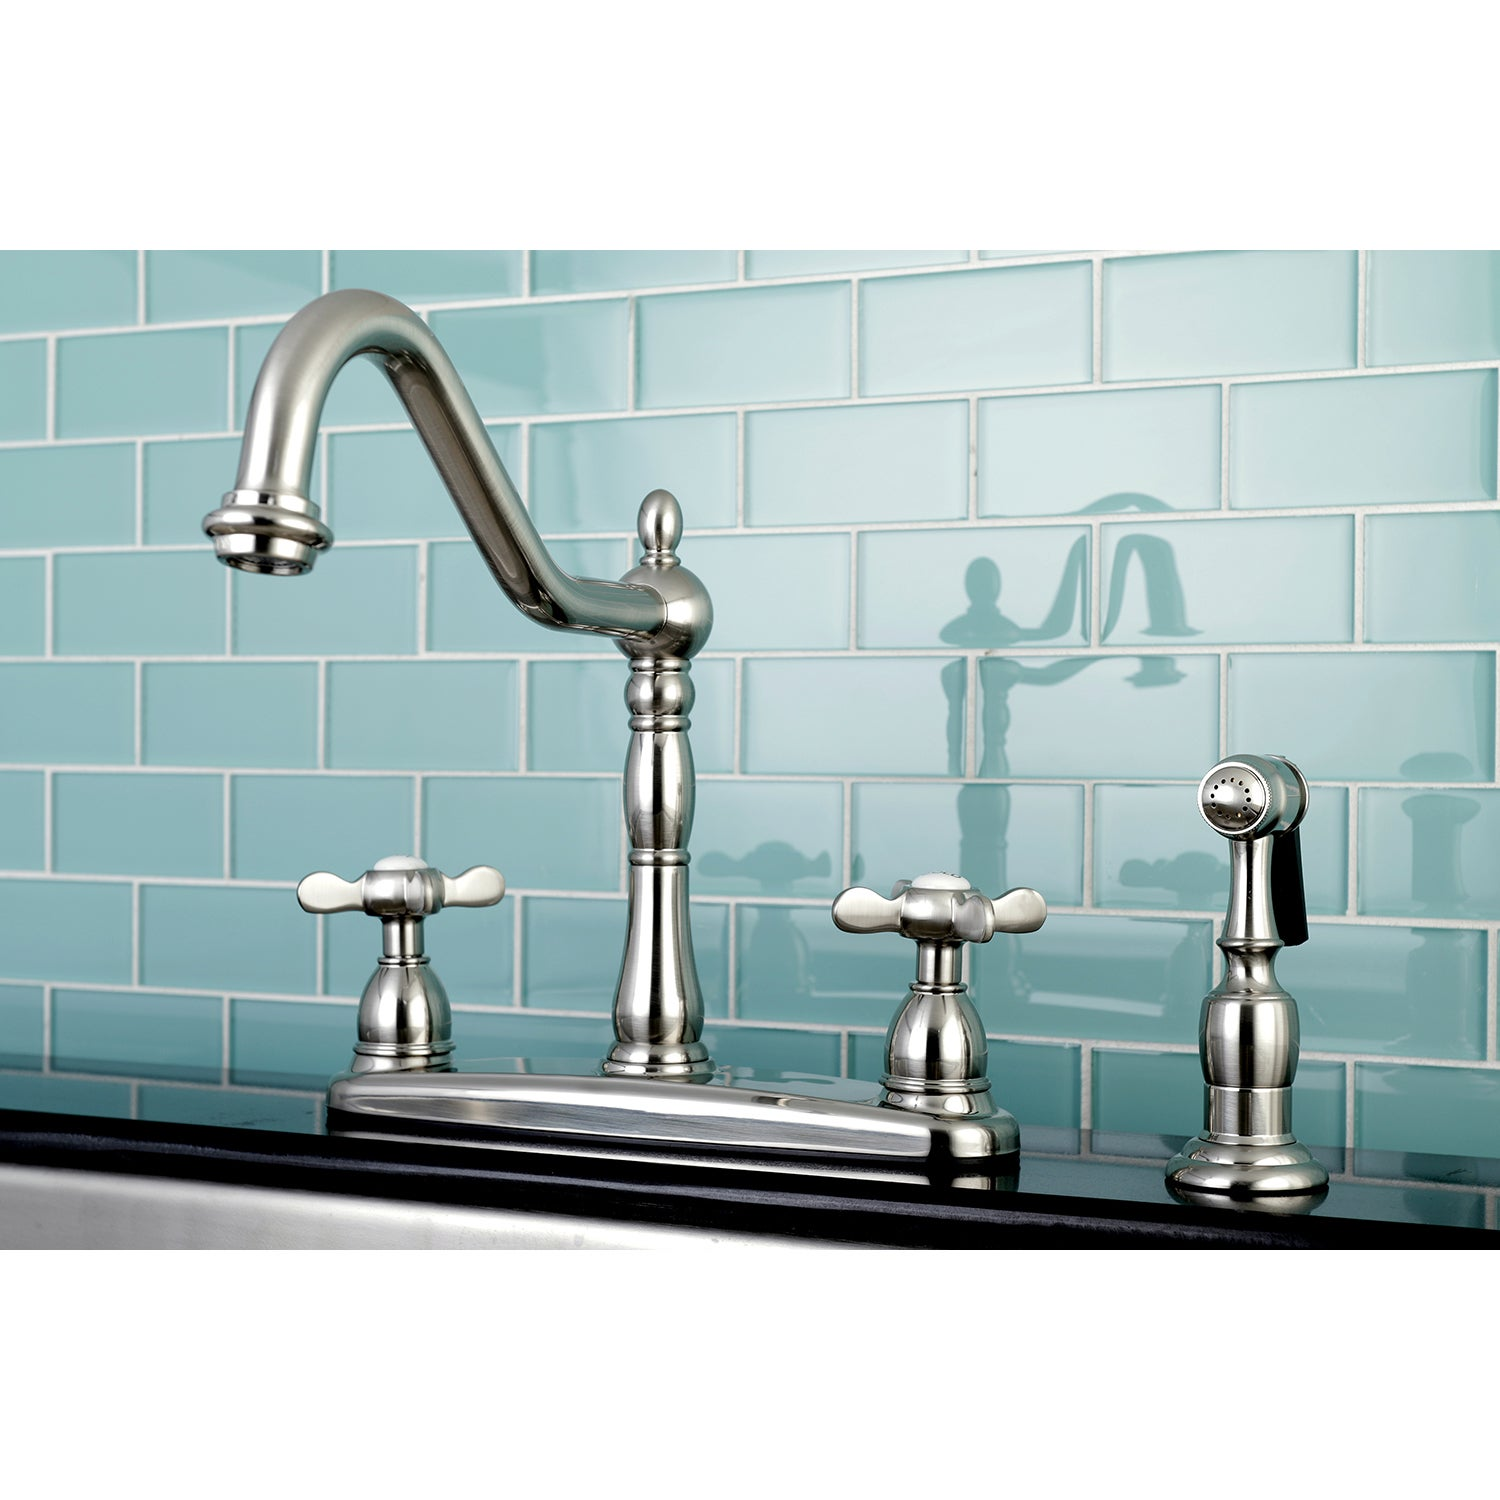 Shop Vintage Cross 8-inch Centerset Kitchen Faucet with Side Sprayer ...